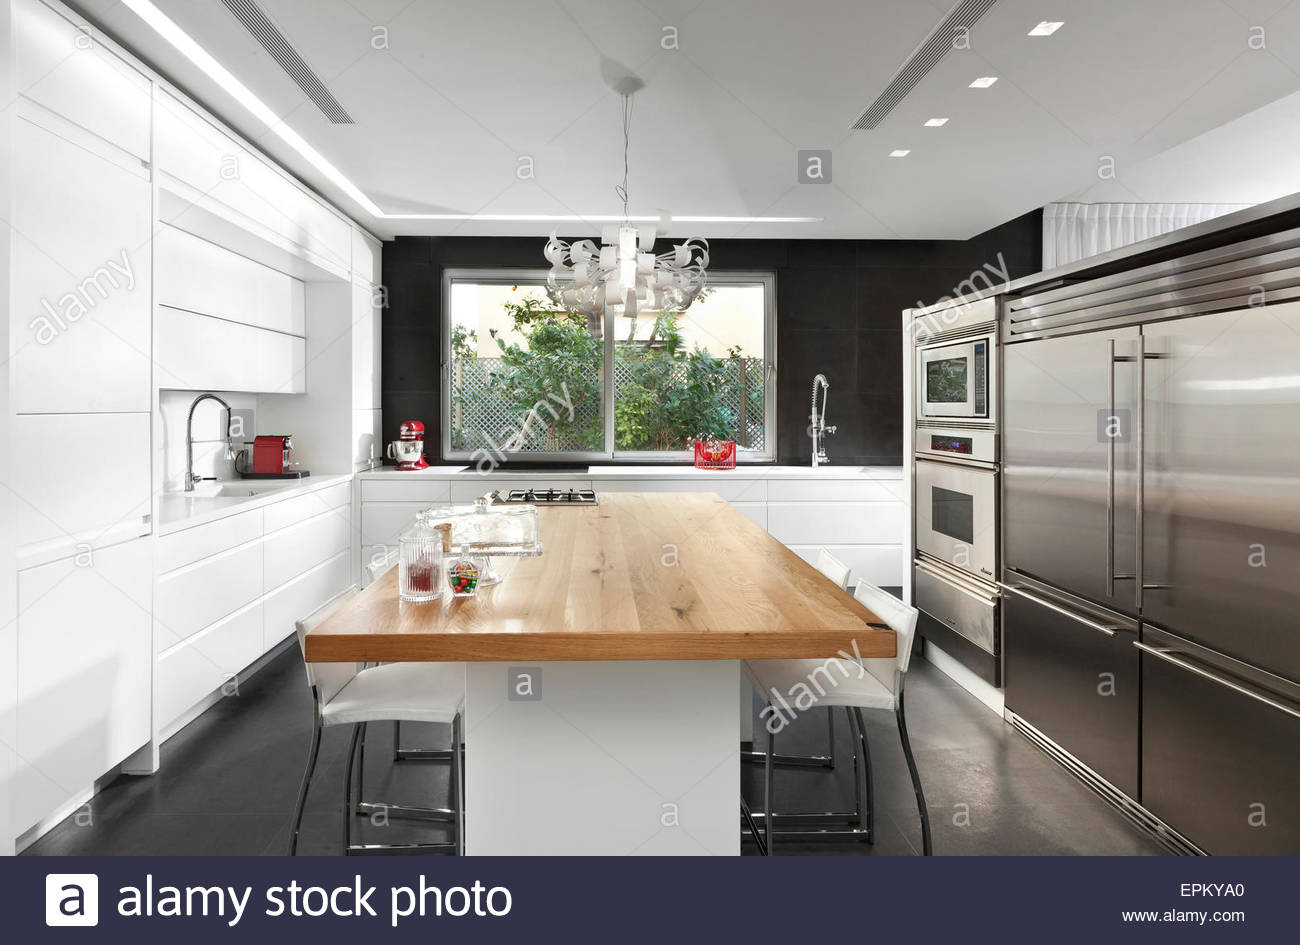 Black And White Kitchen With Wooden Dining Table In Modern Villa Givat Smuel Israel